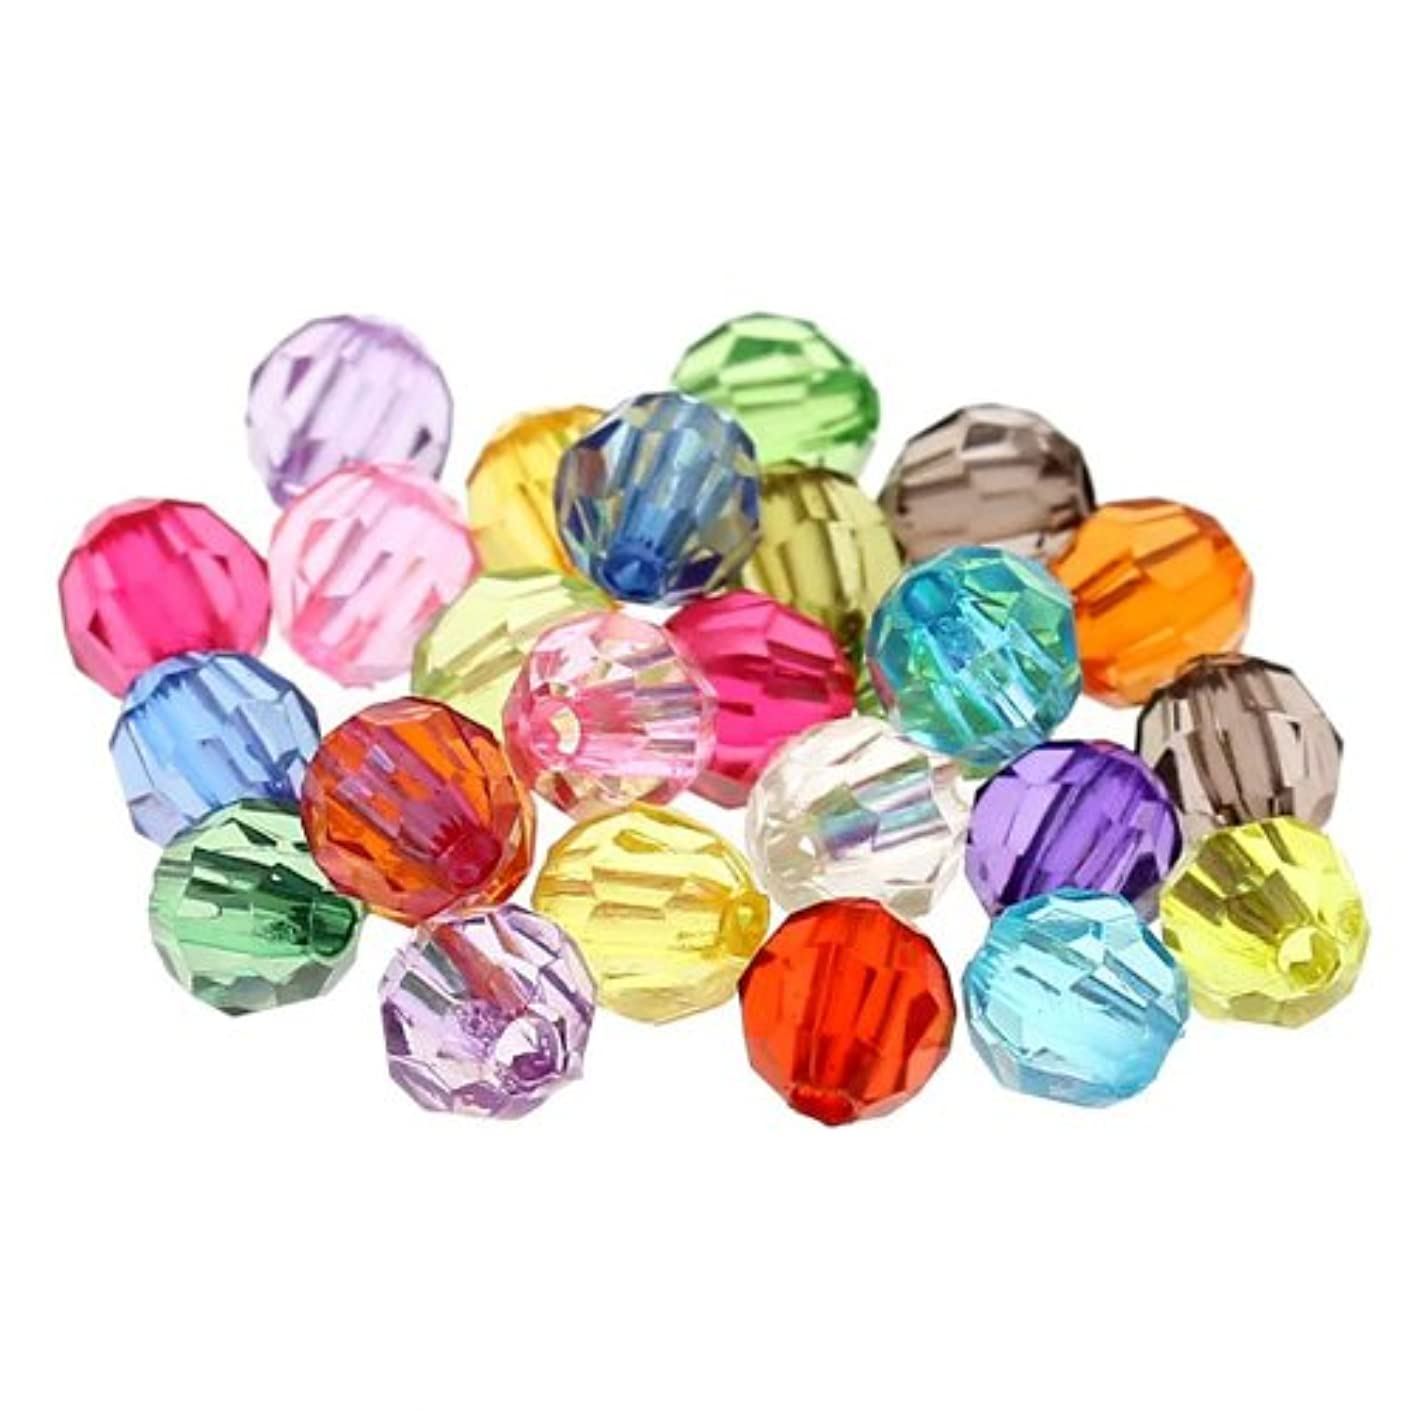 PEPPERLONELY 500pc Assorted 6mm Acrylic Faceted Round Spacer Beads [Office Product]